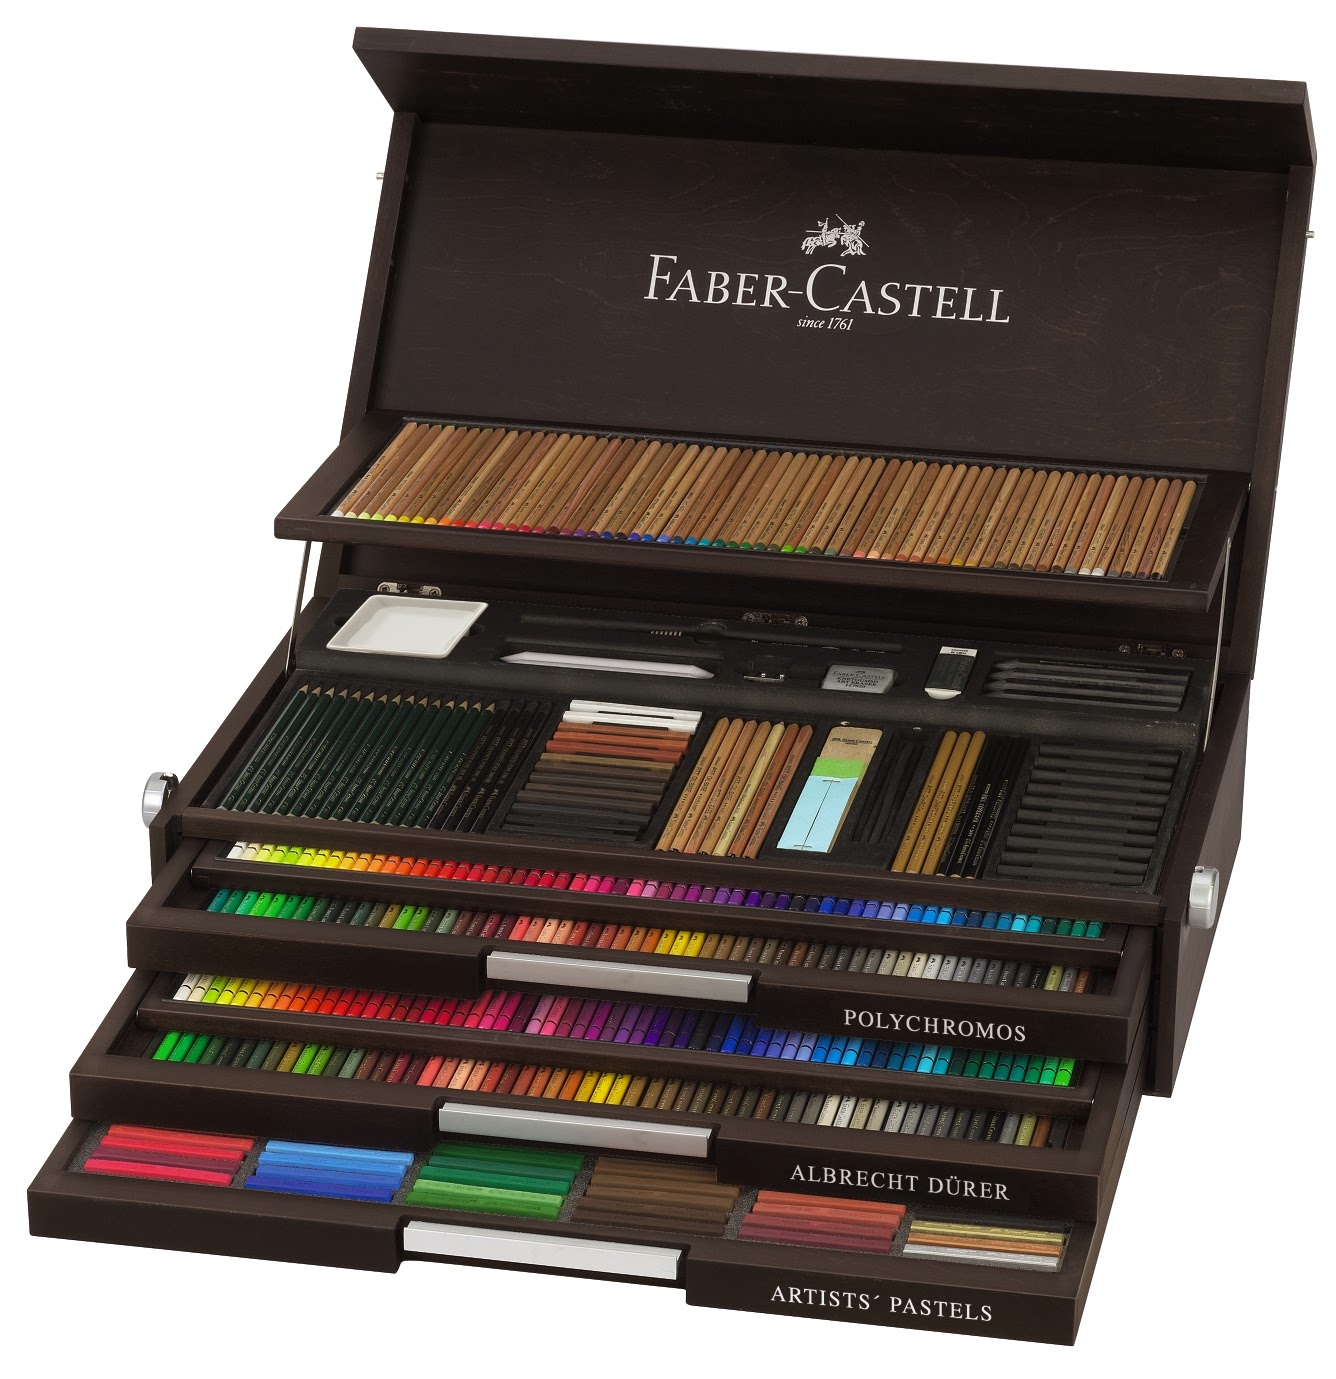 limited edition faber castell 250th anniversary box set ebay. Black Bedroom Furniture Sets. Home Design Ideas